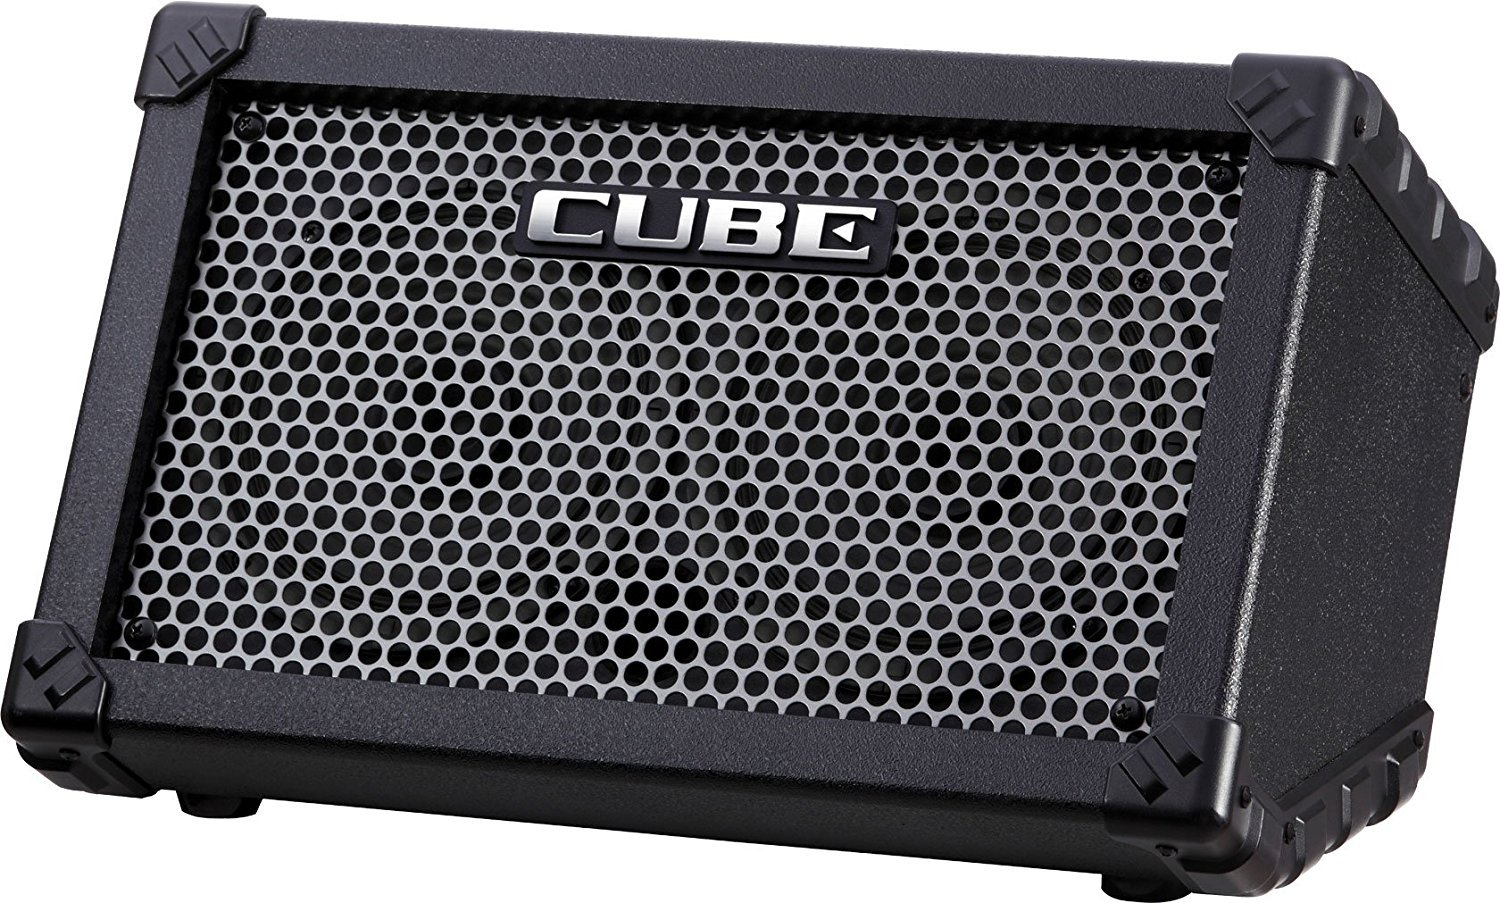 Roland CUBE Street Battery Powered Stereo Guitar Combo Review